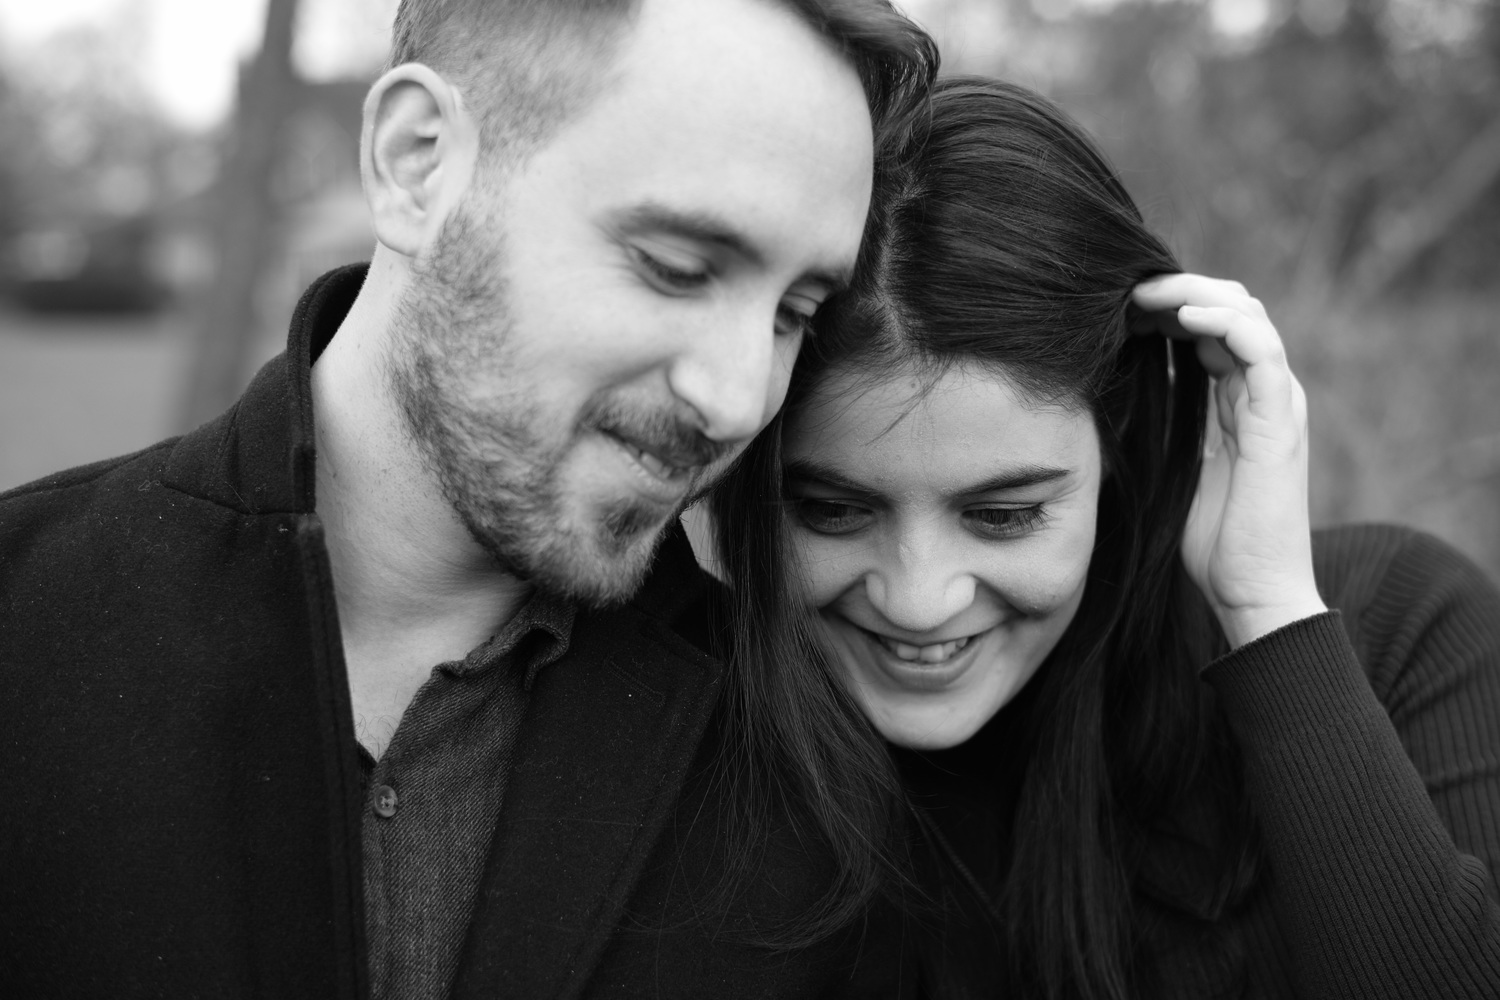 Engagement shoot in the UK